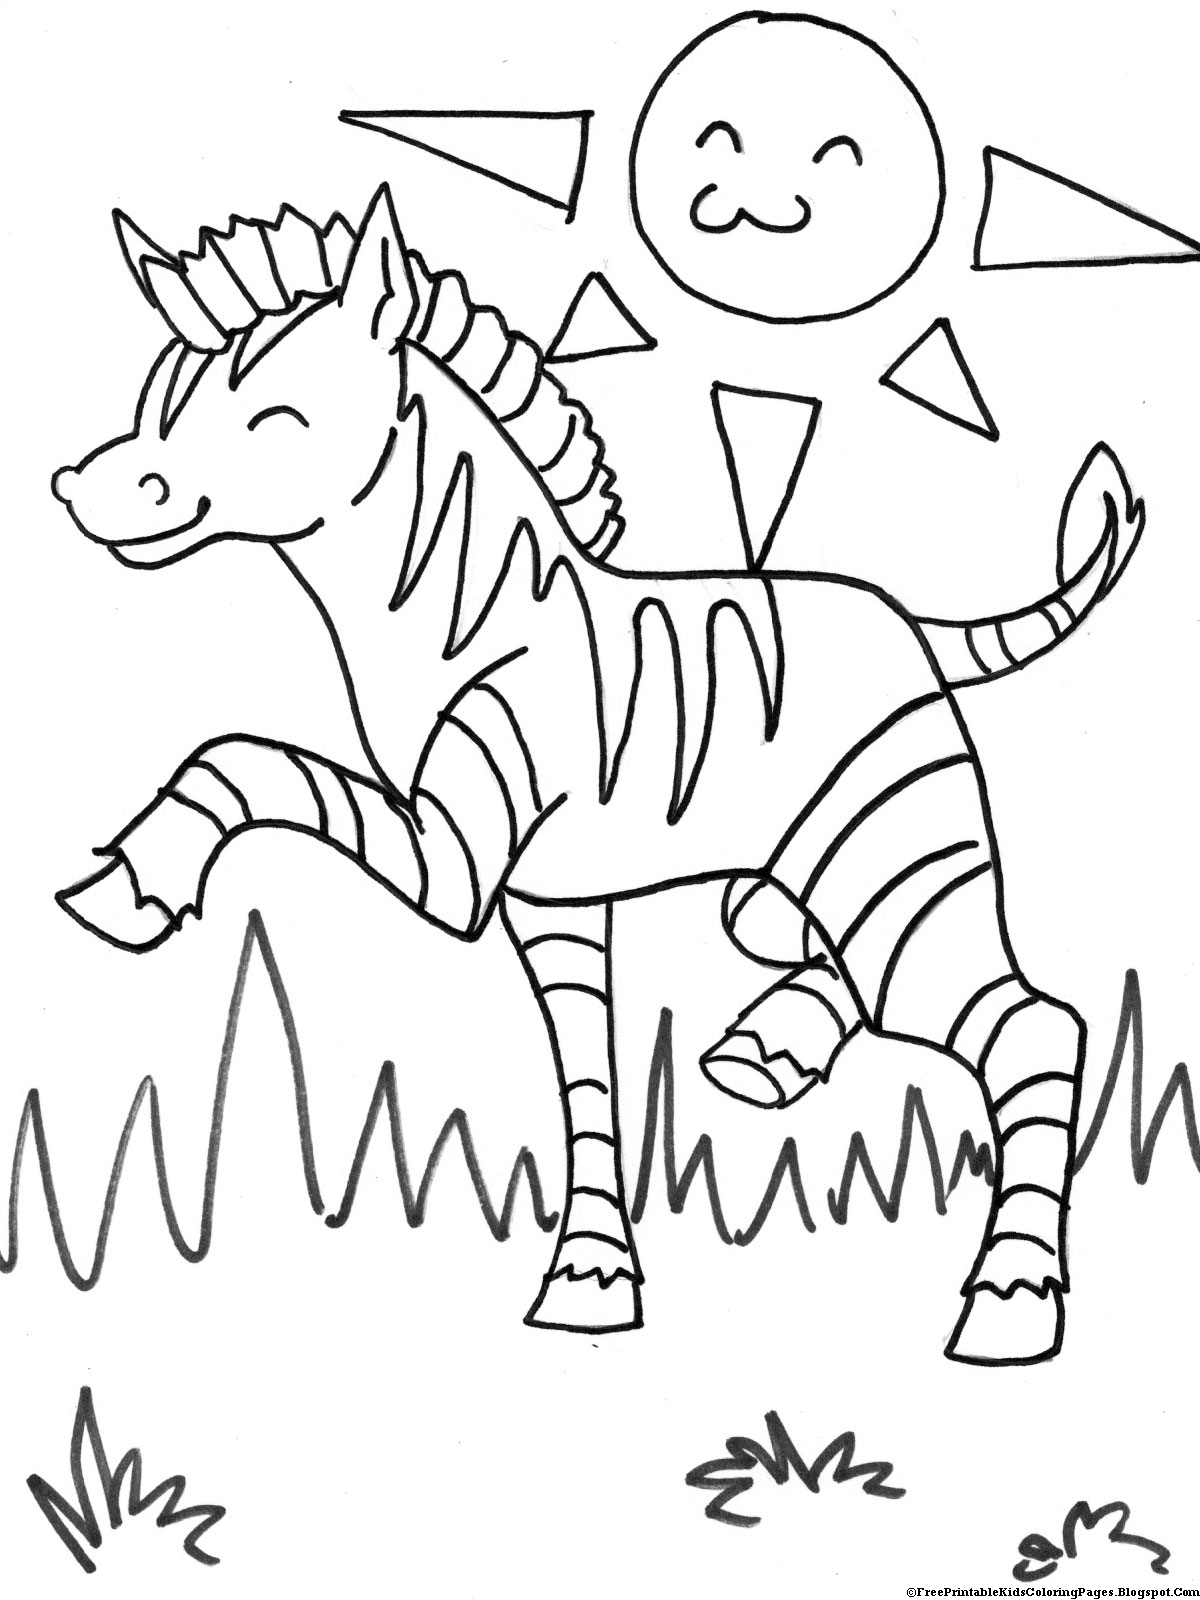 zebra print coloring pages zebra coloring pages download and print zebra coloring pages zebra print coloring pages